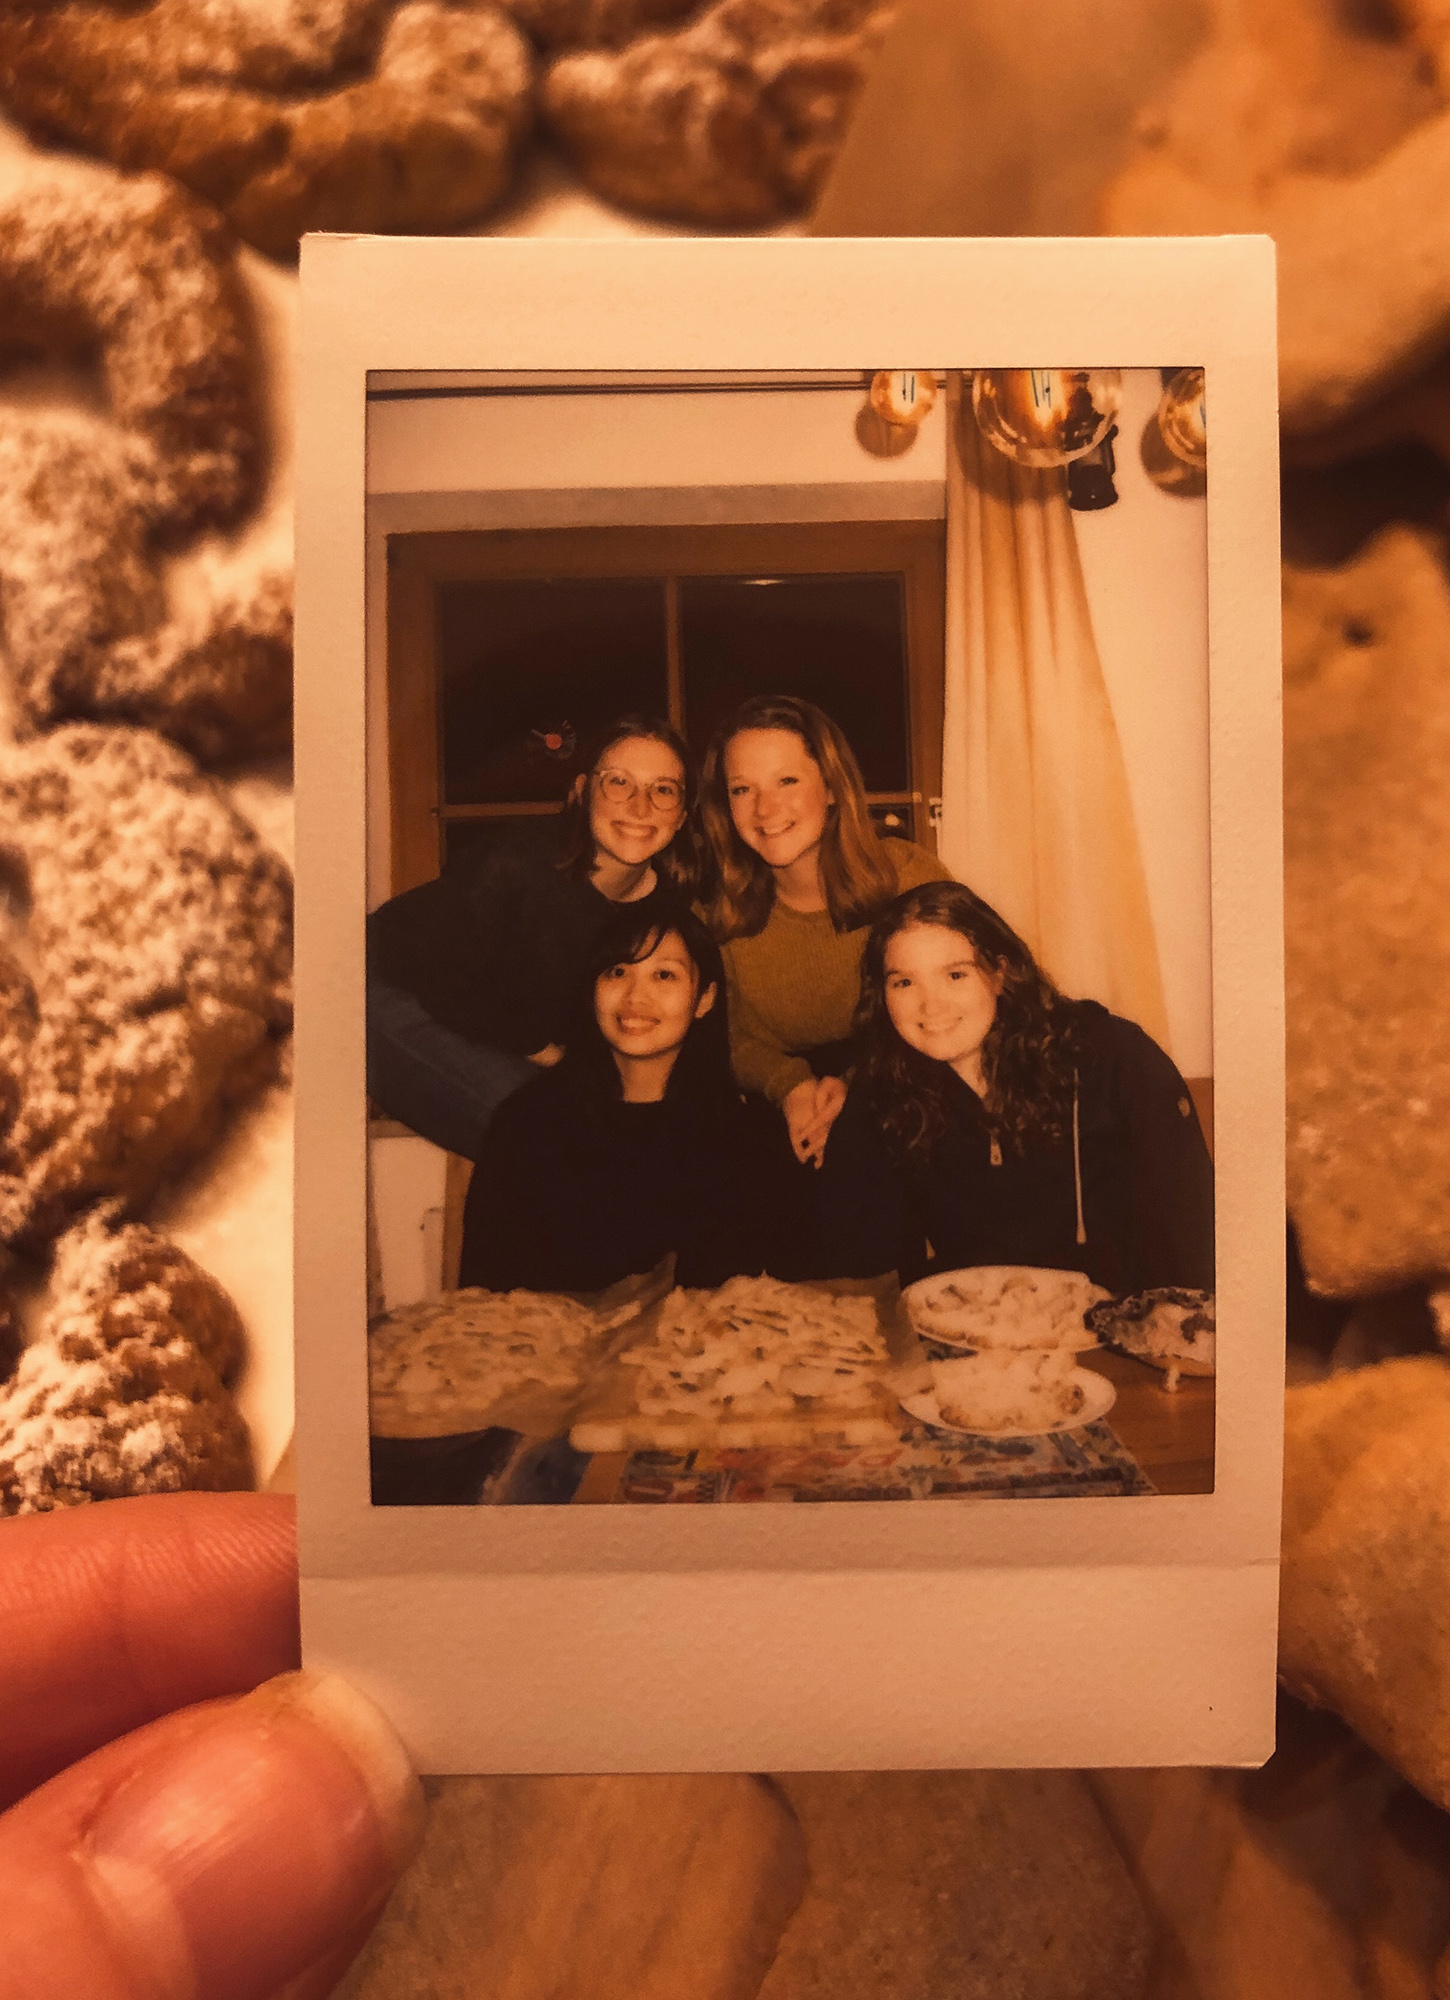 Ceiledh thumb holding a paloroid photo of her with 3 friends. Cookies in the background.